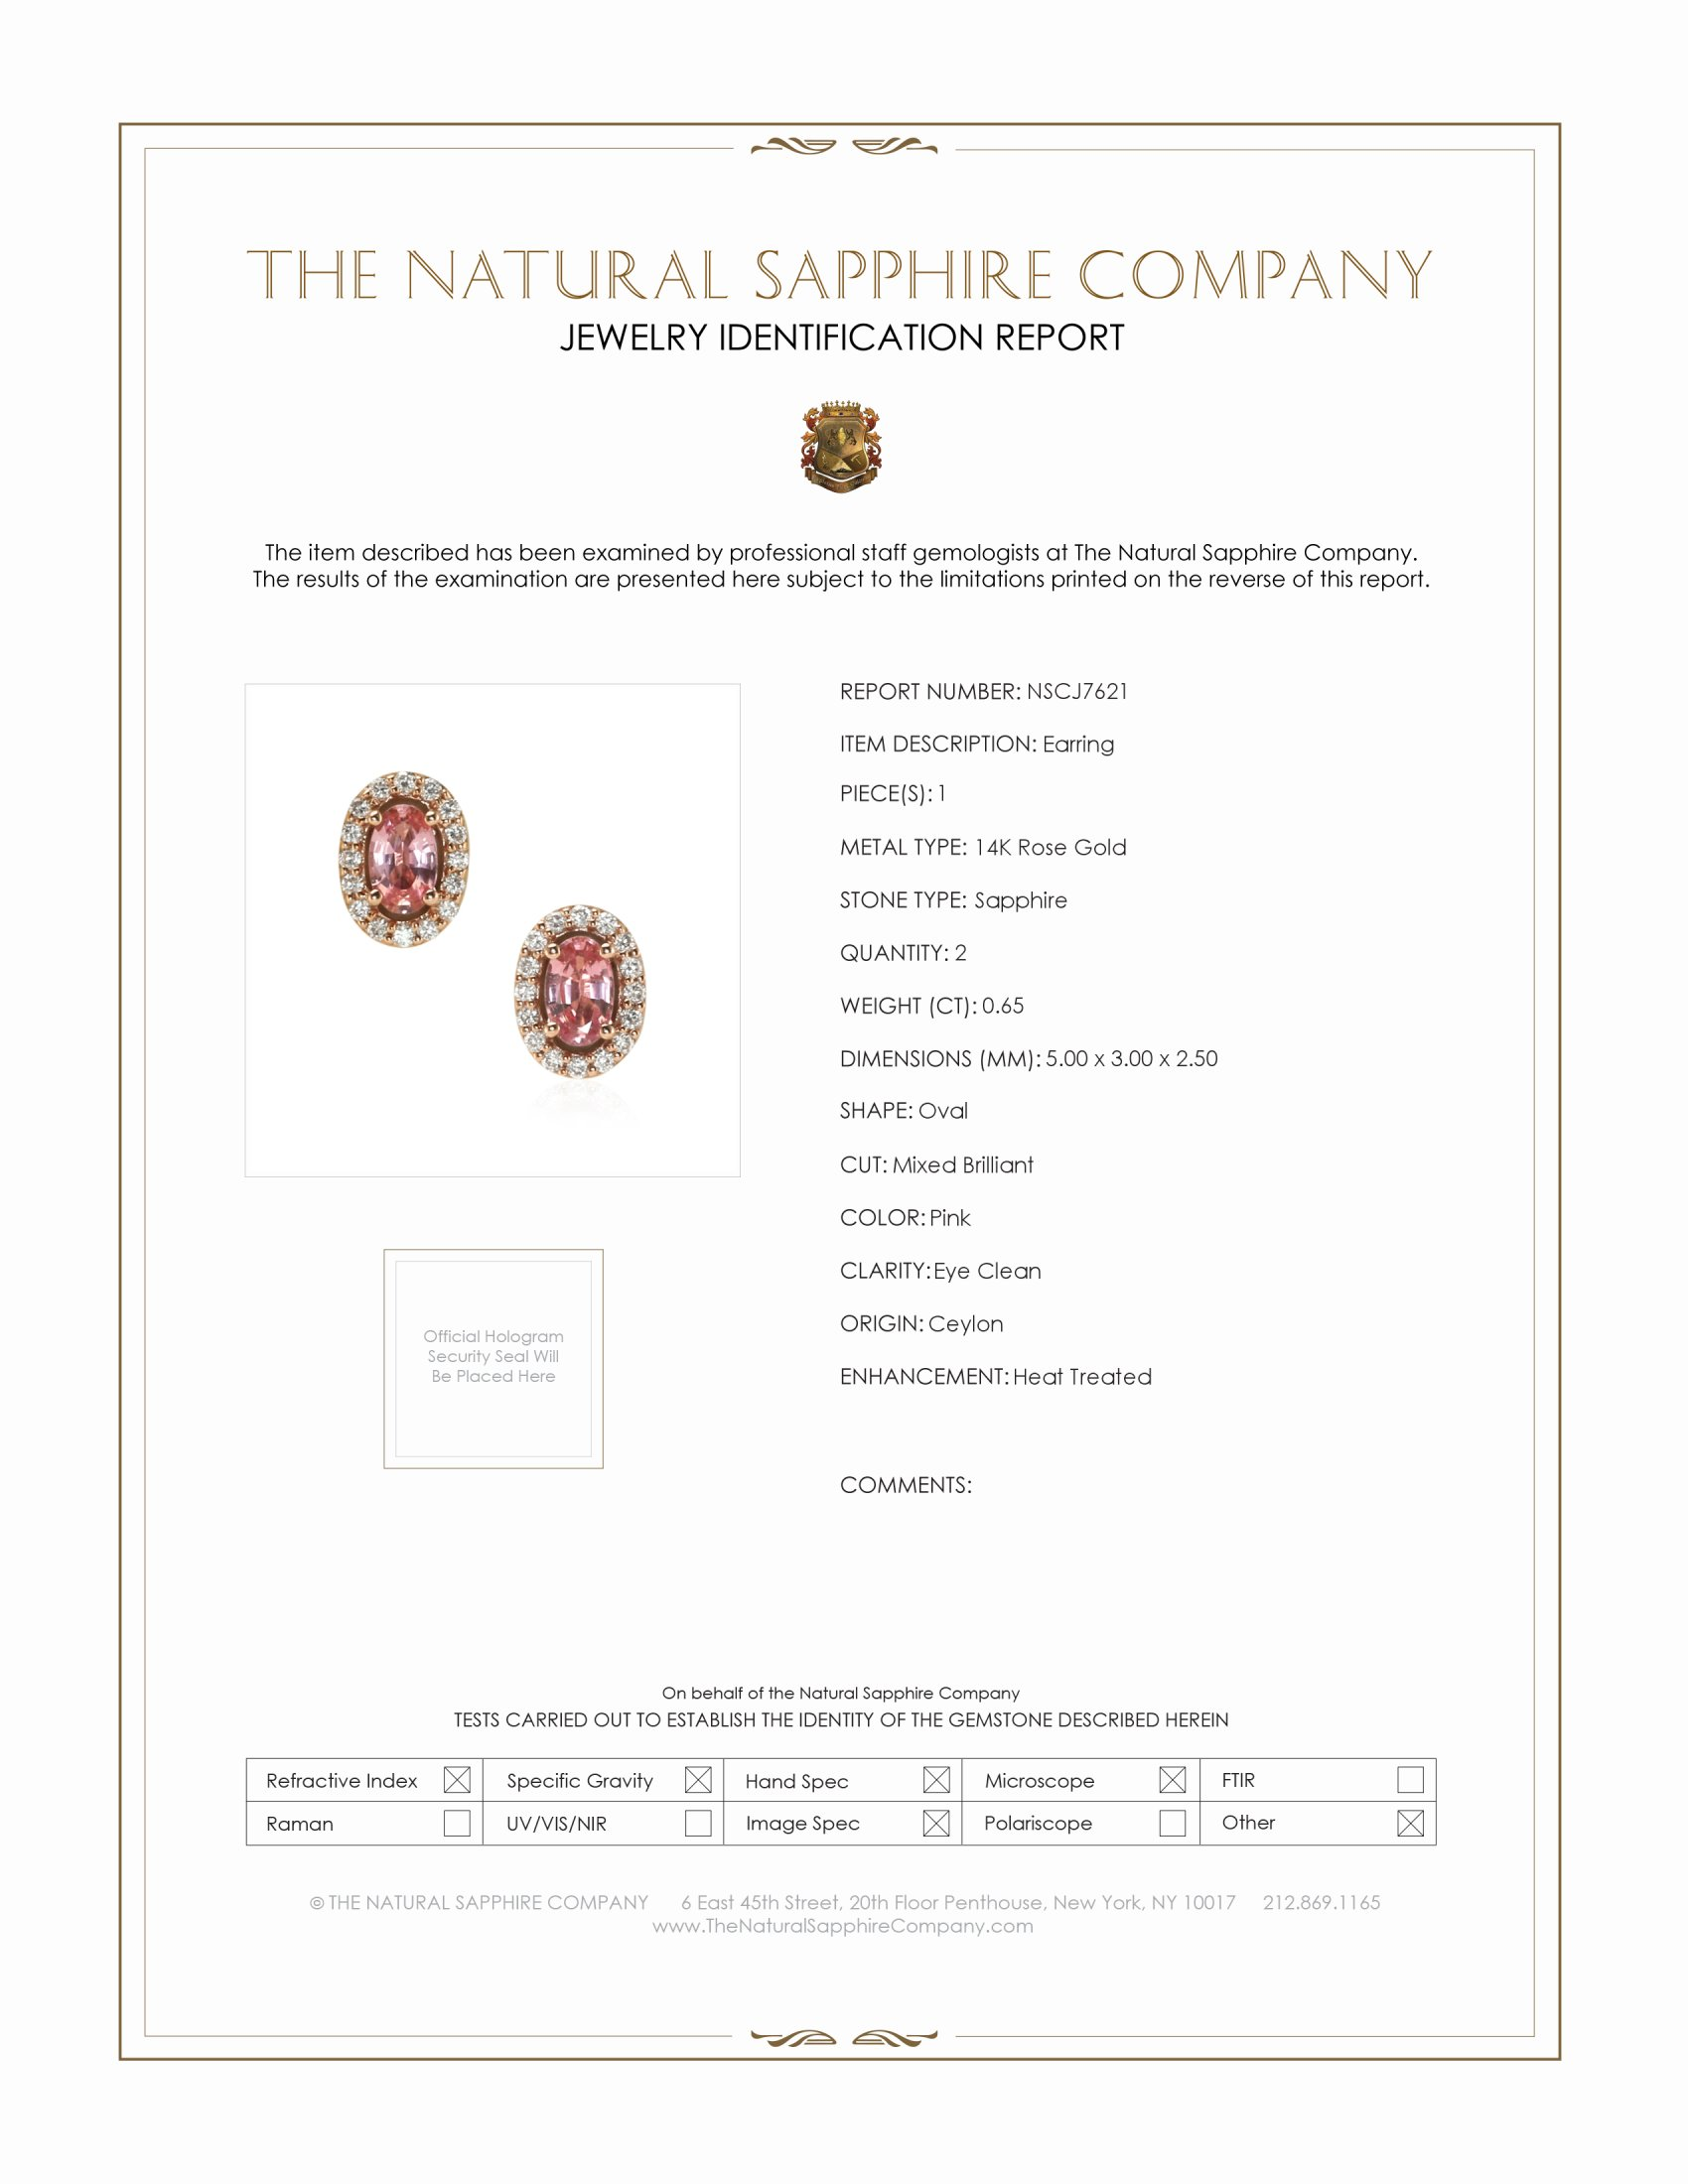 0.65ct Pink Sapphire Earring Certification